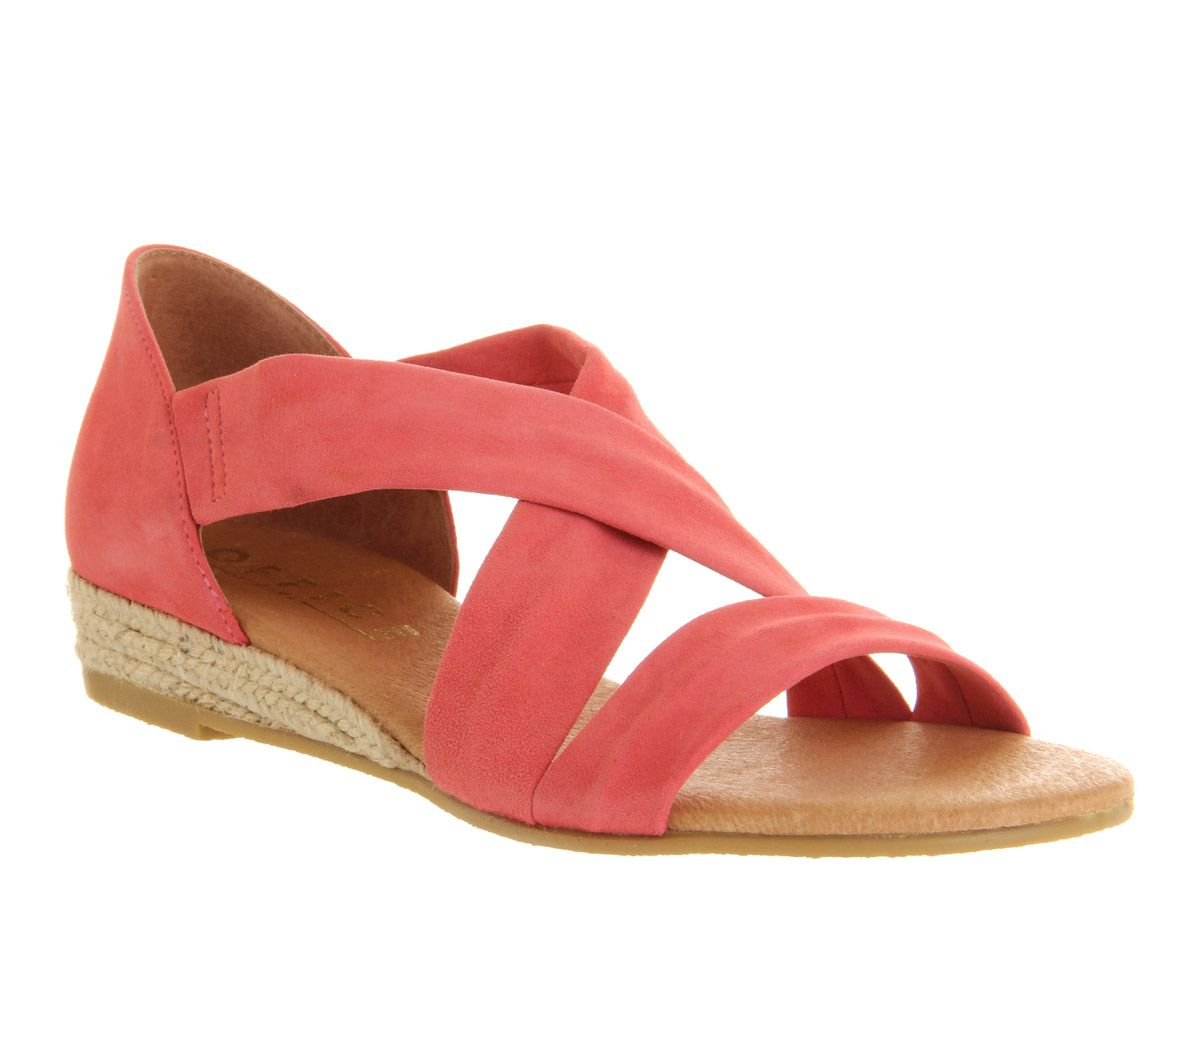 Office HALLIE - Wedge sandals - gold vKljtH0